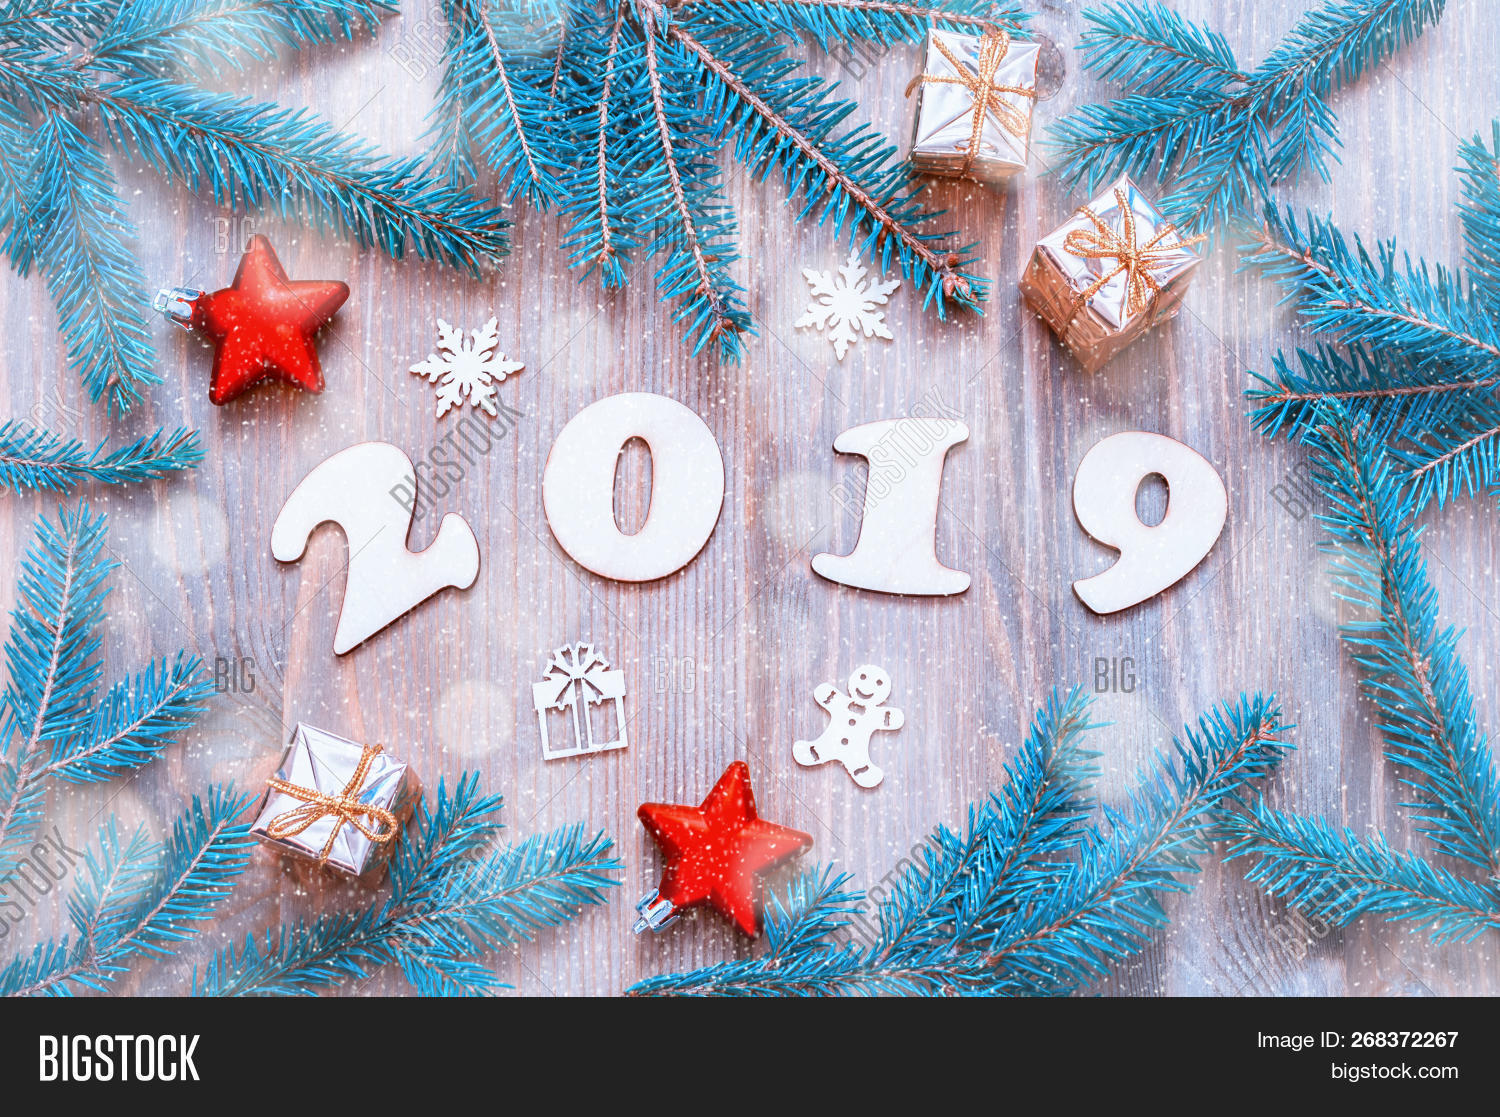 2019,background,bell,blue,box,branch,calendar,card,celebration,christmas,december,decoration,eve,festive,figure,frame,gift,golden,greeting,happy,holiday,invitation,object,postcard,present,red,ribbon,snowfall,snowflake,star,symbol,texture,time,tree,vacation,view,2019-winter,wood,wooden,xmas,New-year,new-year-background,2019-card,2019-year,2019-background,2019-composition,2019-postcard